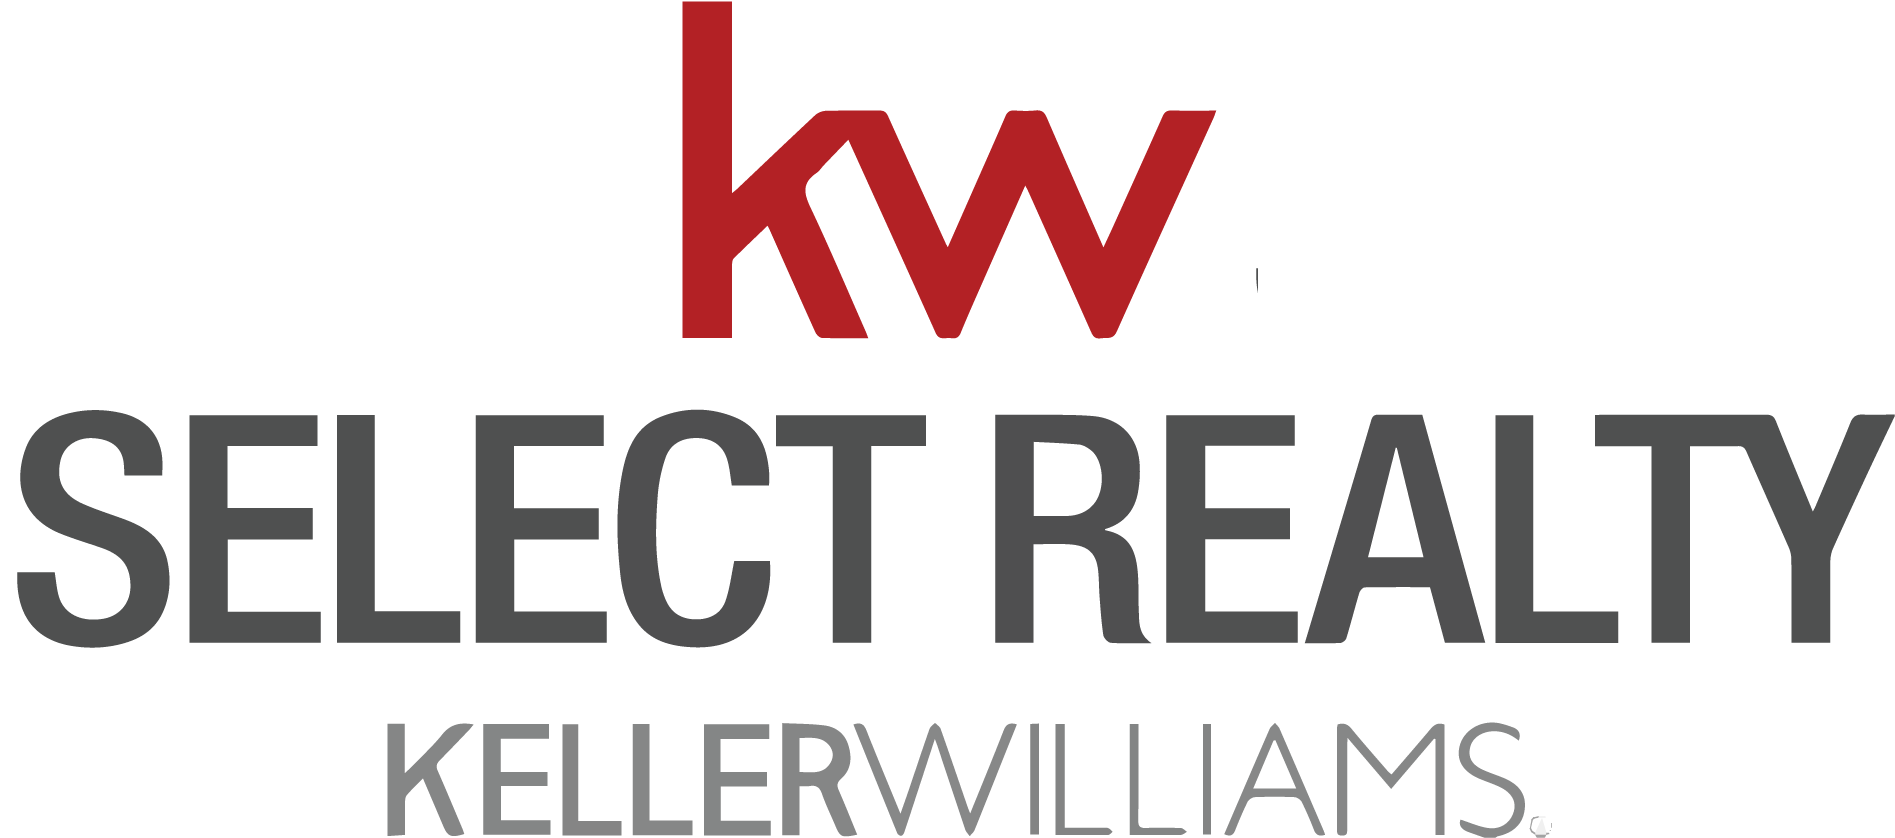 kw select realty